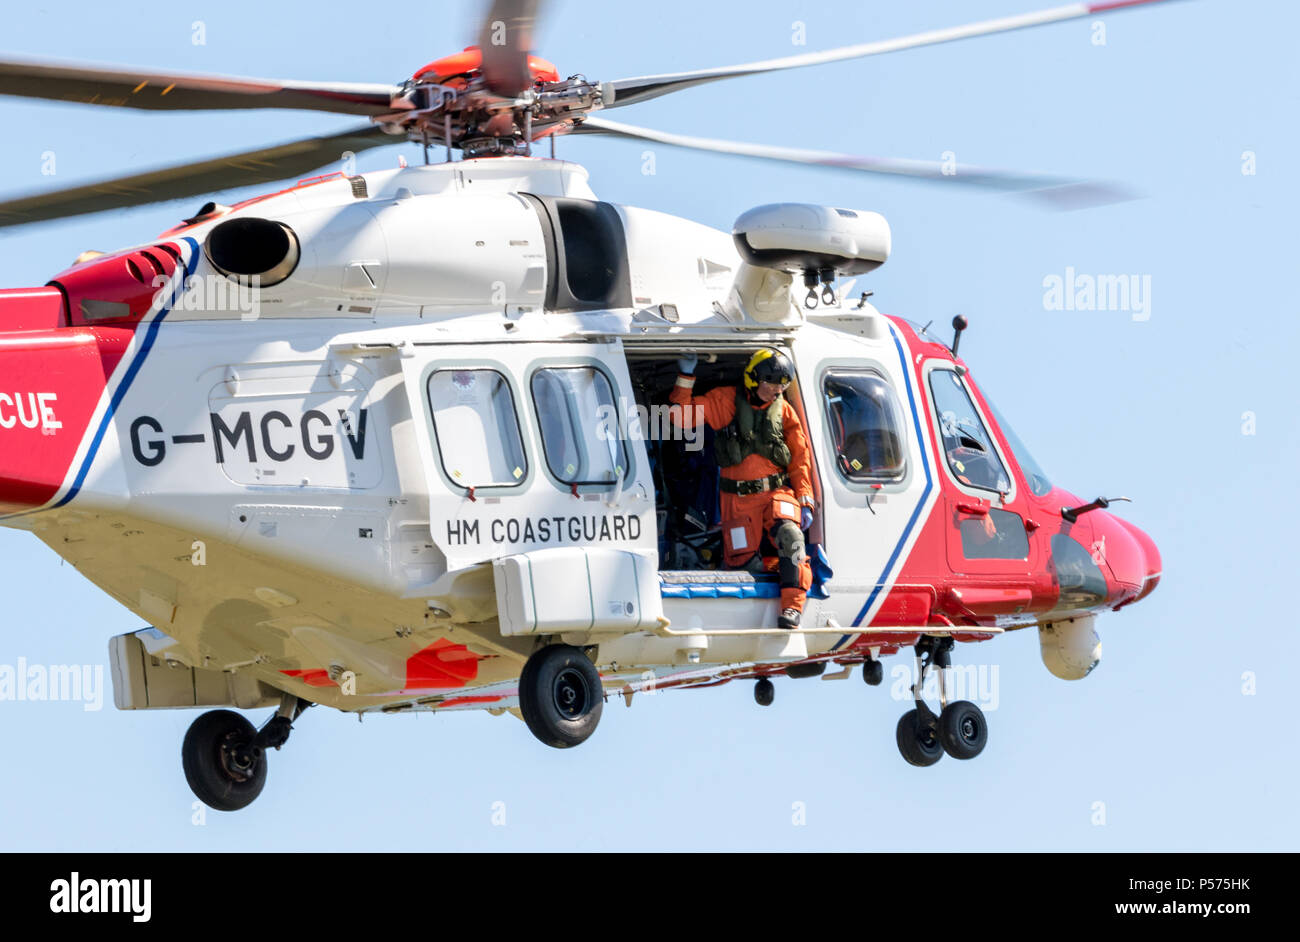 Beachy Head, Eastbourne, East Sussex, UK. 25th June 2018.Police, the Coastguard from Eastbourne and Birling Gap, assisted by the Lydd based Search and Rescue helicopter recover a body from the base of the cliffs at Beachy Head. Credit: Newspics UK South/Alamy Live News - Stock Image